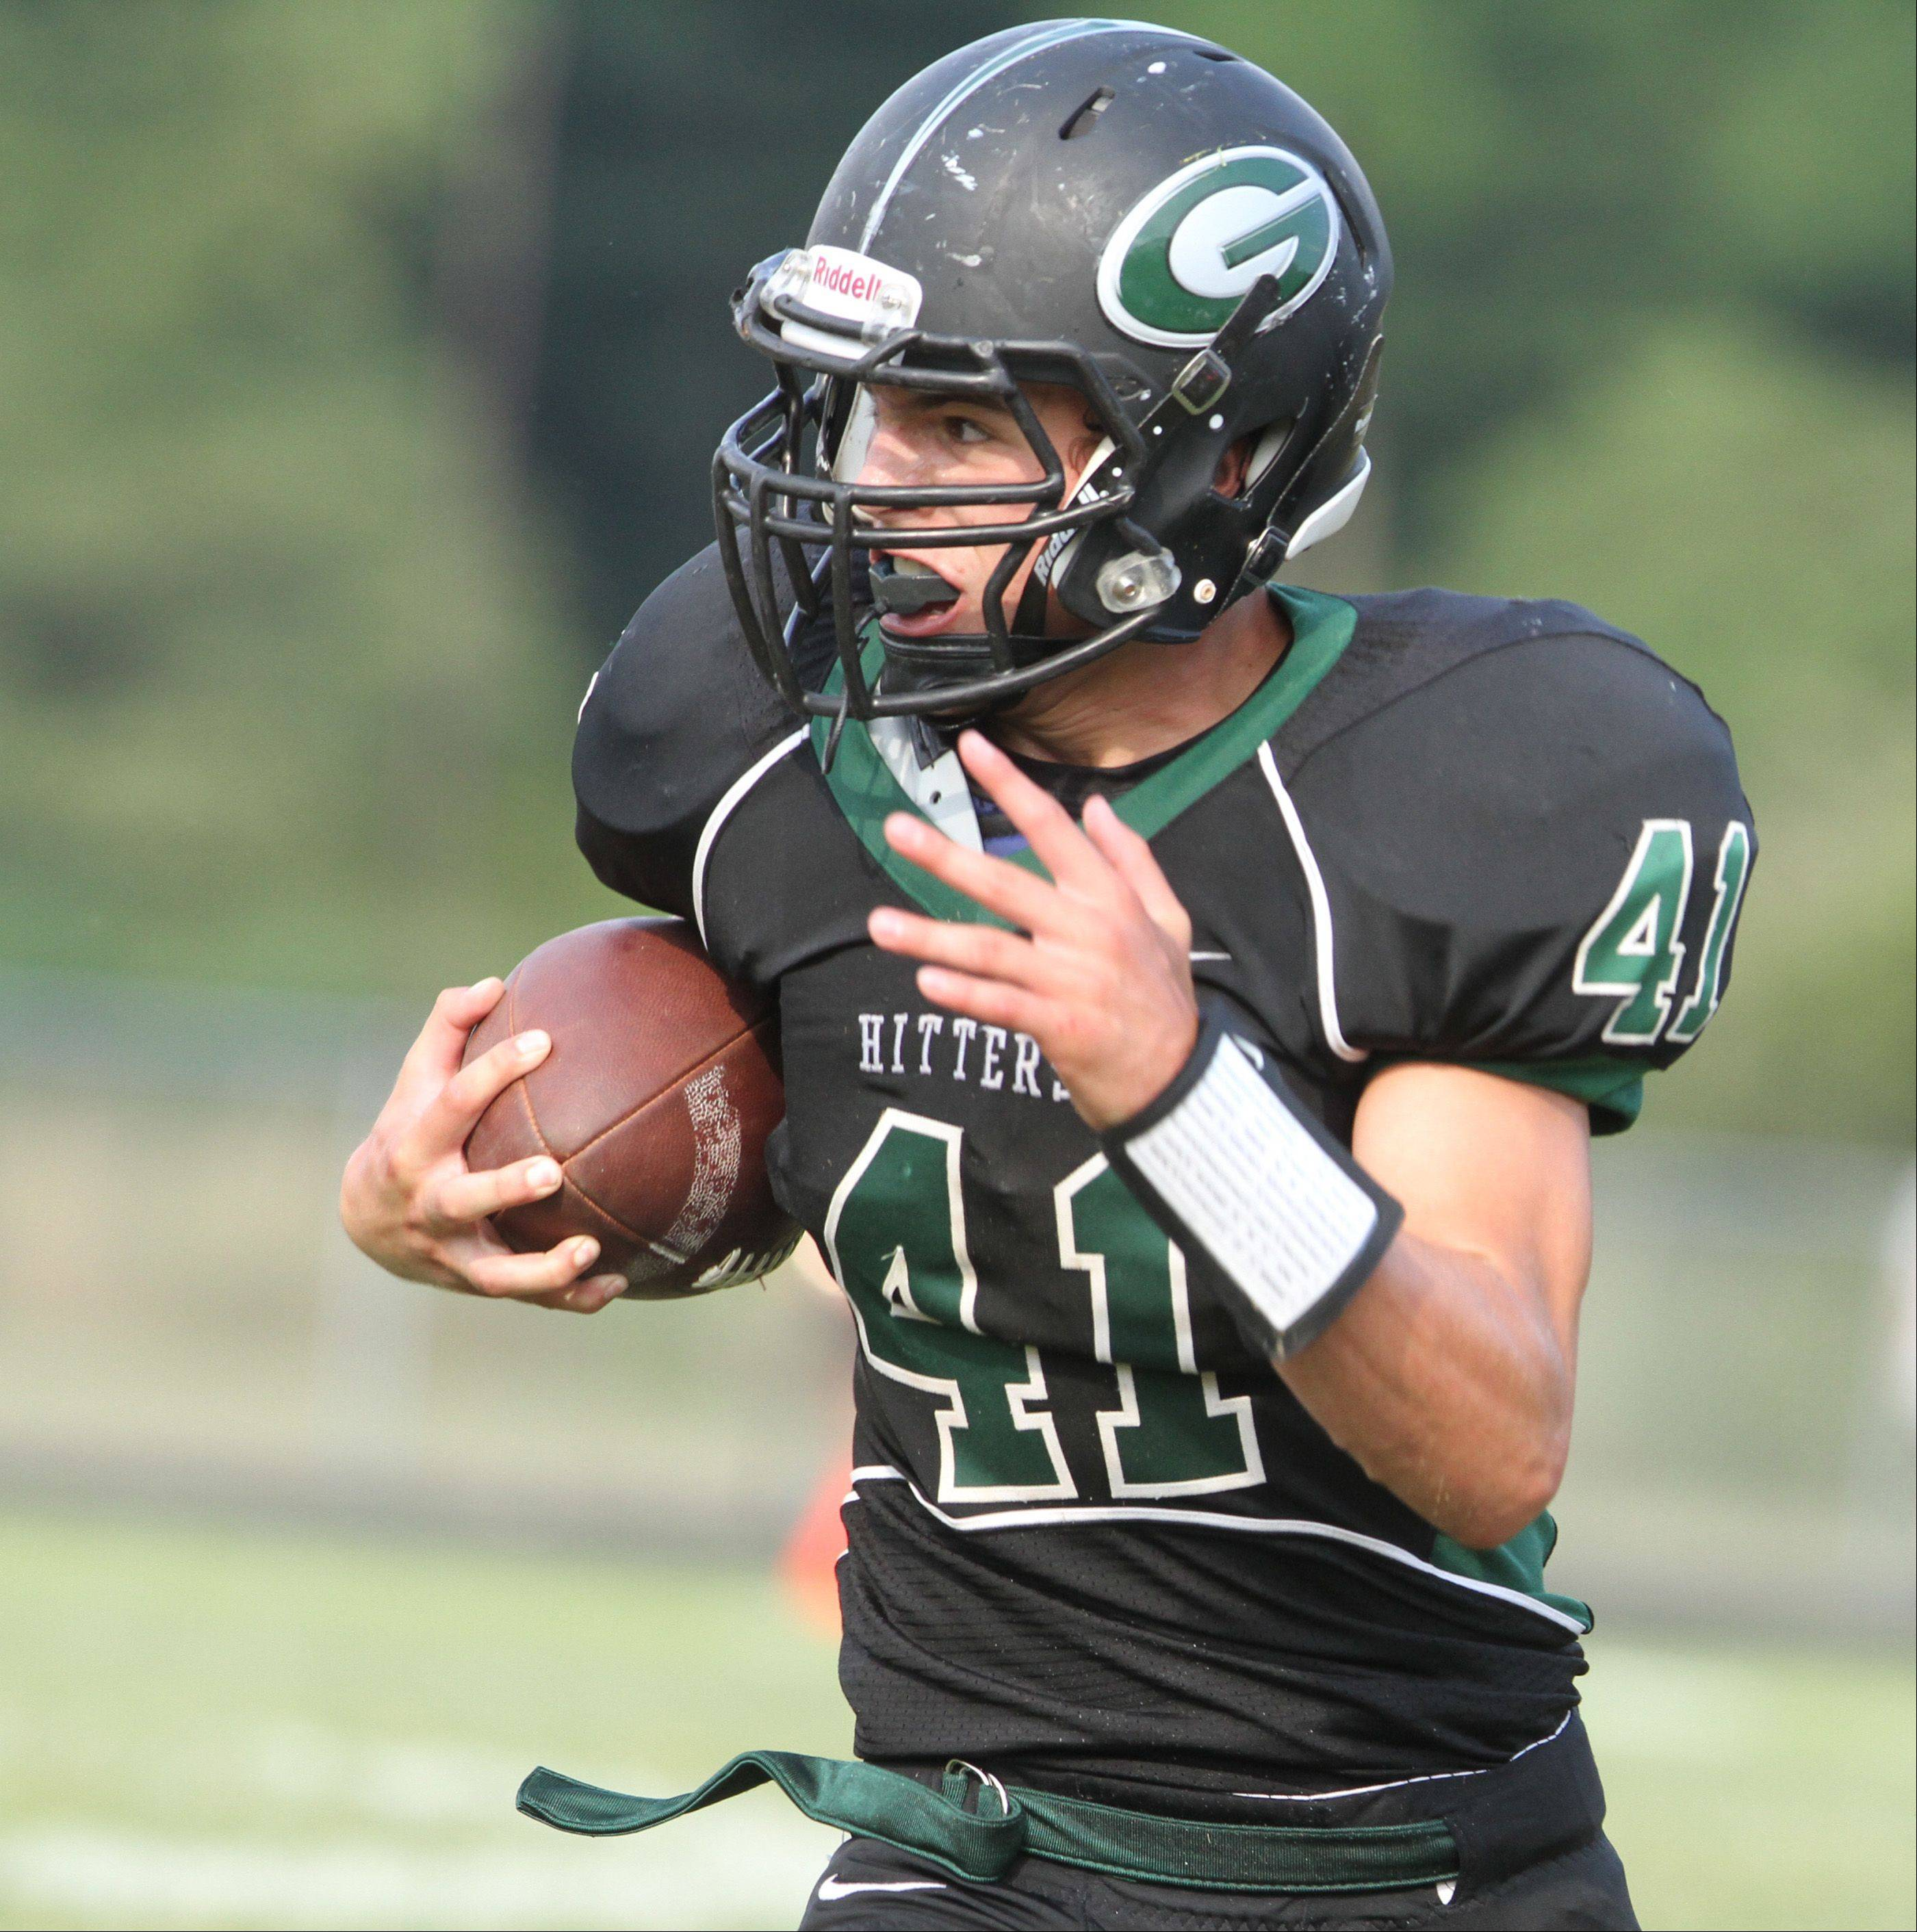 Glenbard West linebacker Eric Farley runs with an interception in the third-quarter against Wheaton Warrenville South at Glenbard West on Saturday, August 25.